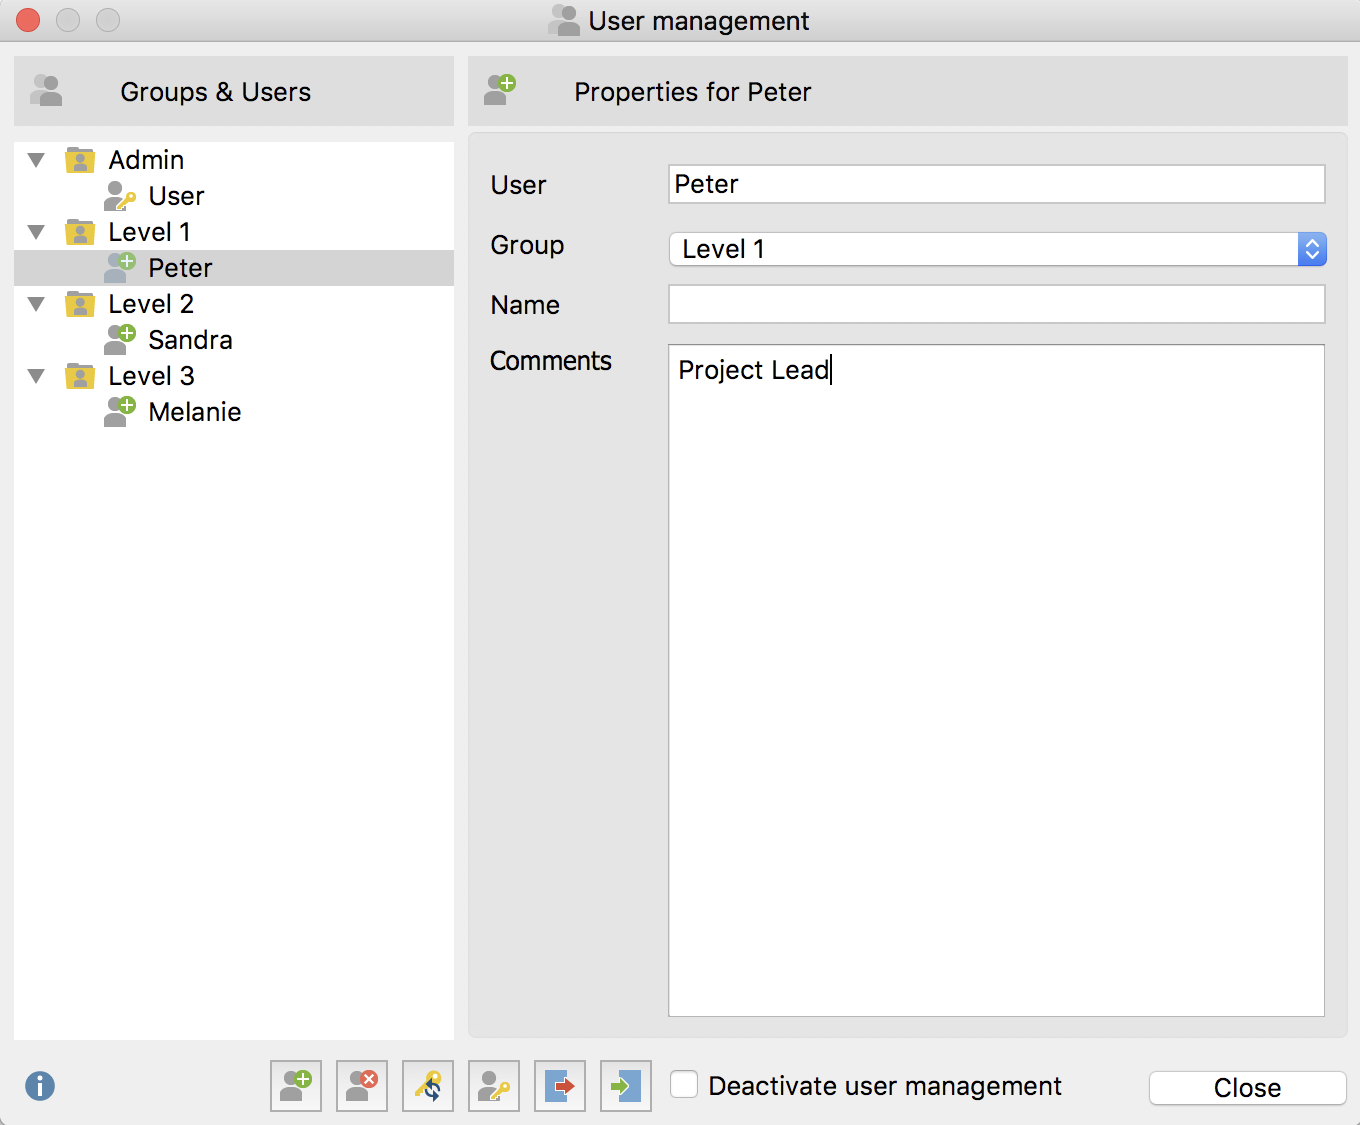 Main user management window